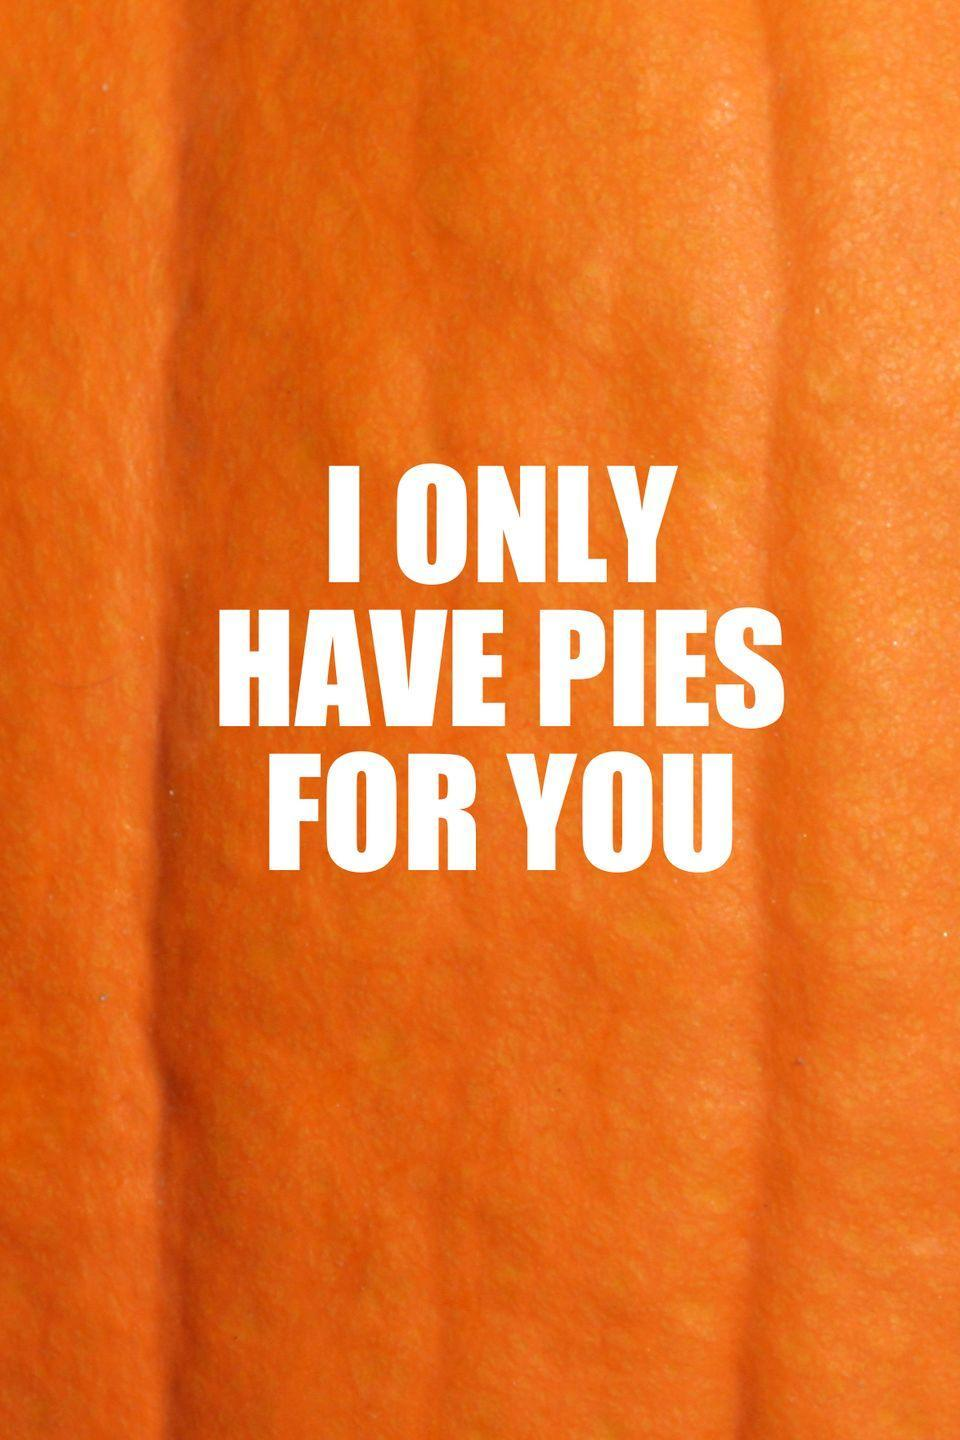 <p>Share this one-liner with your sweetie. (We're sure they only have pies for you too!)</p>